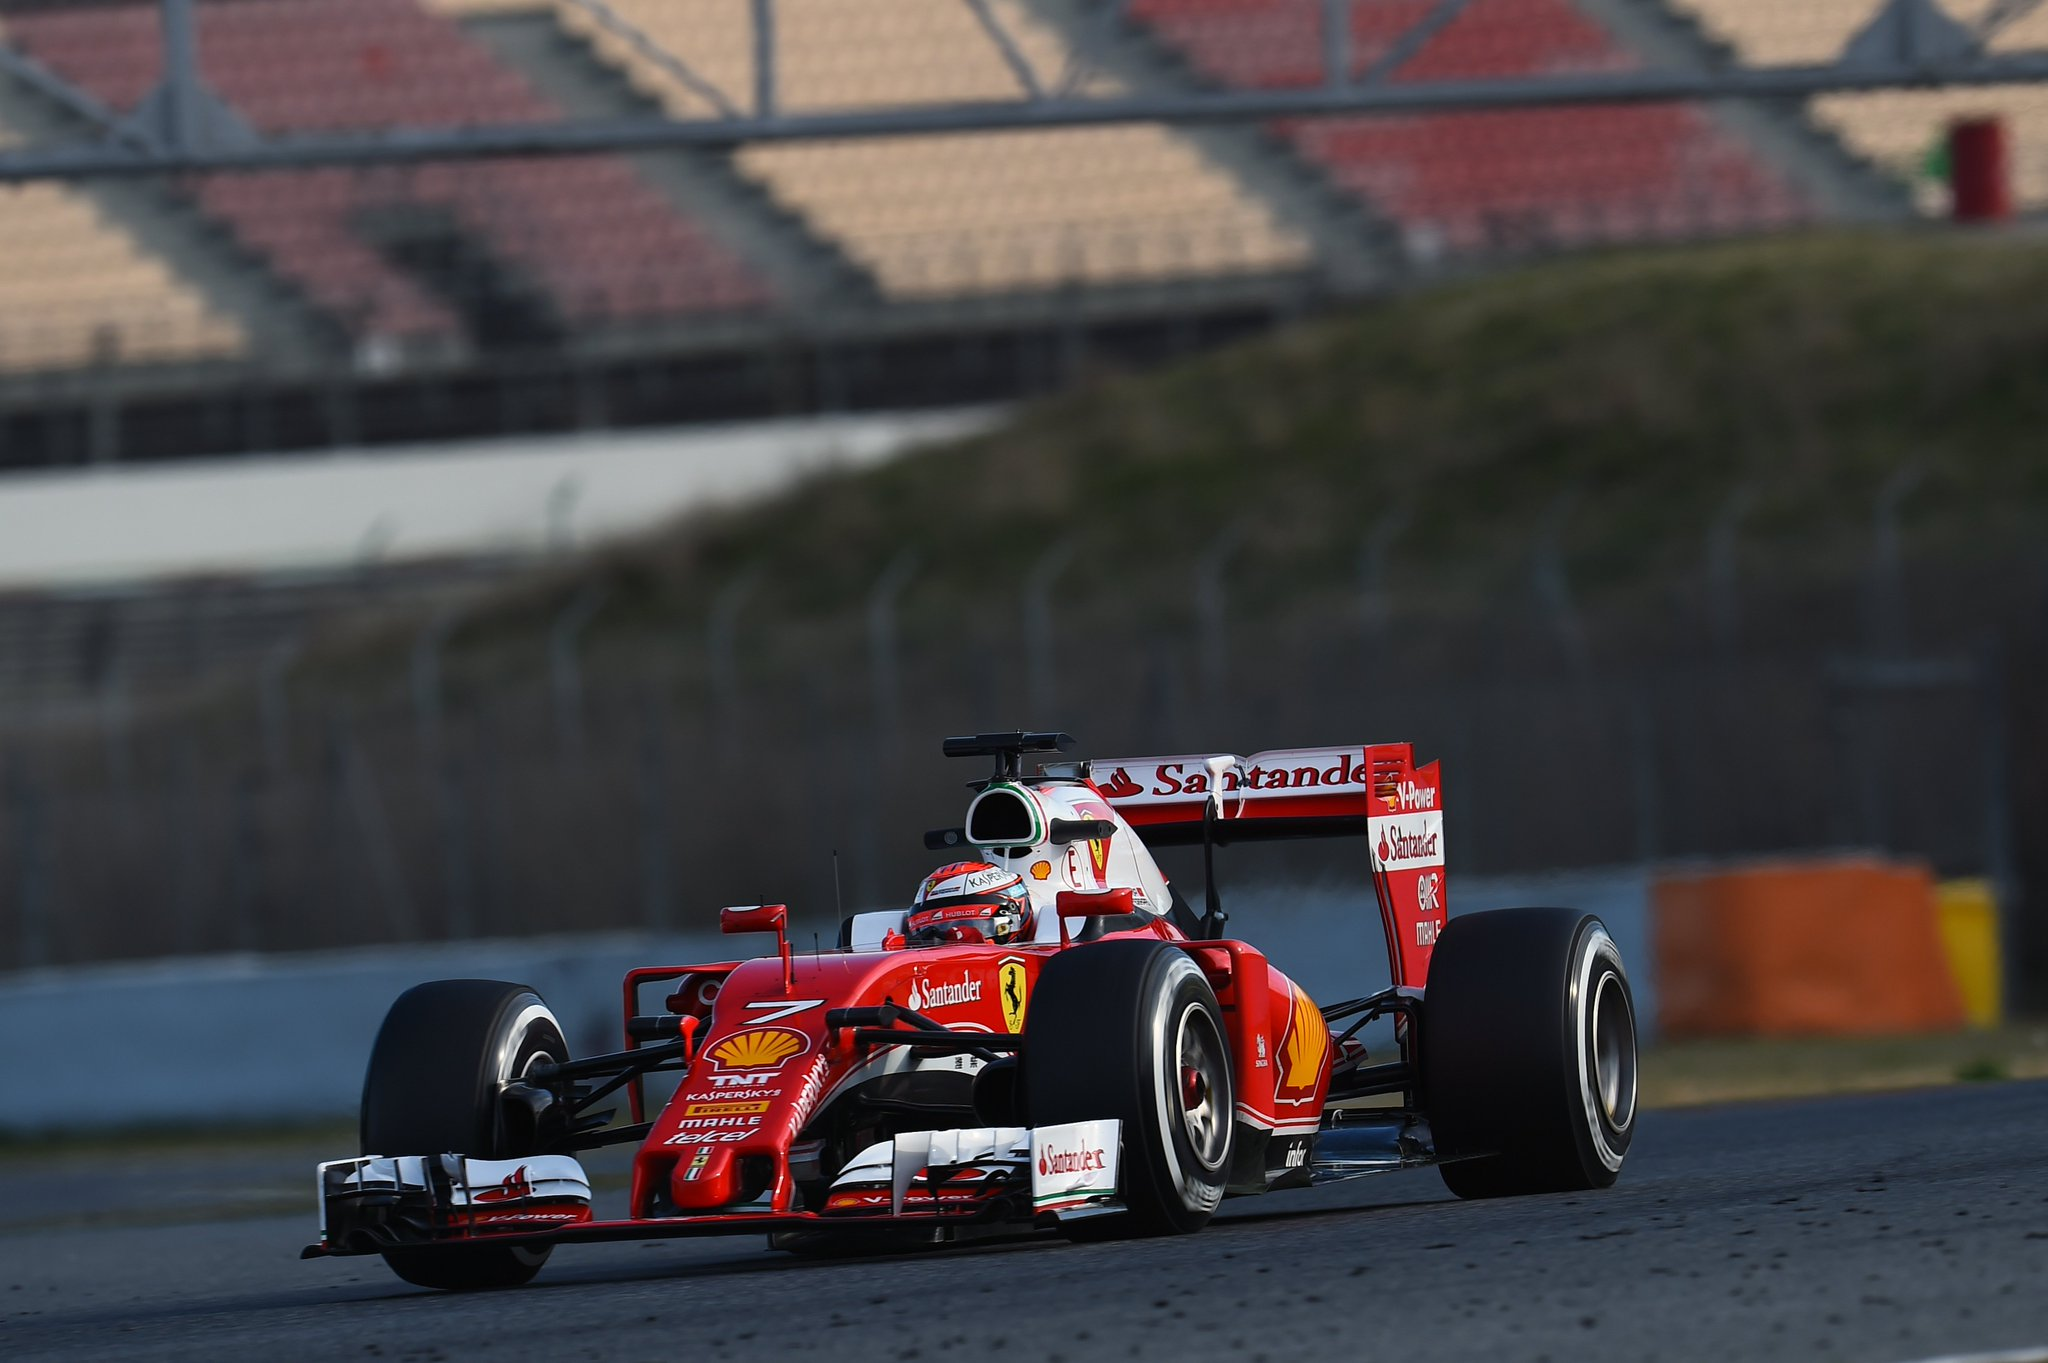 Kimi: I think we have a very good package, time will tell if it is good enough